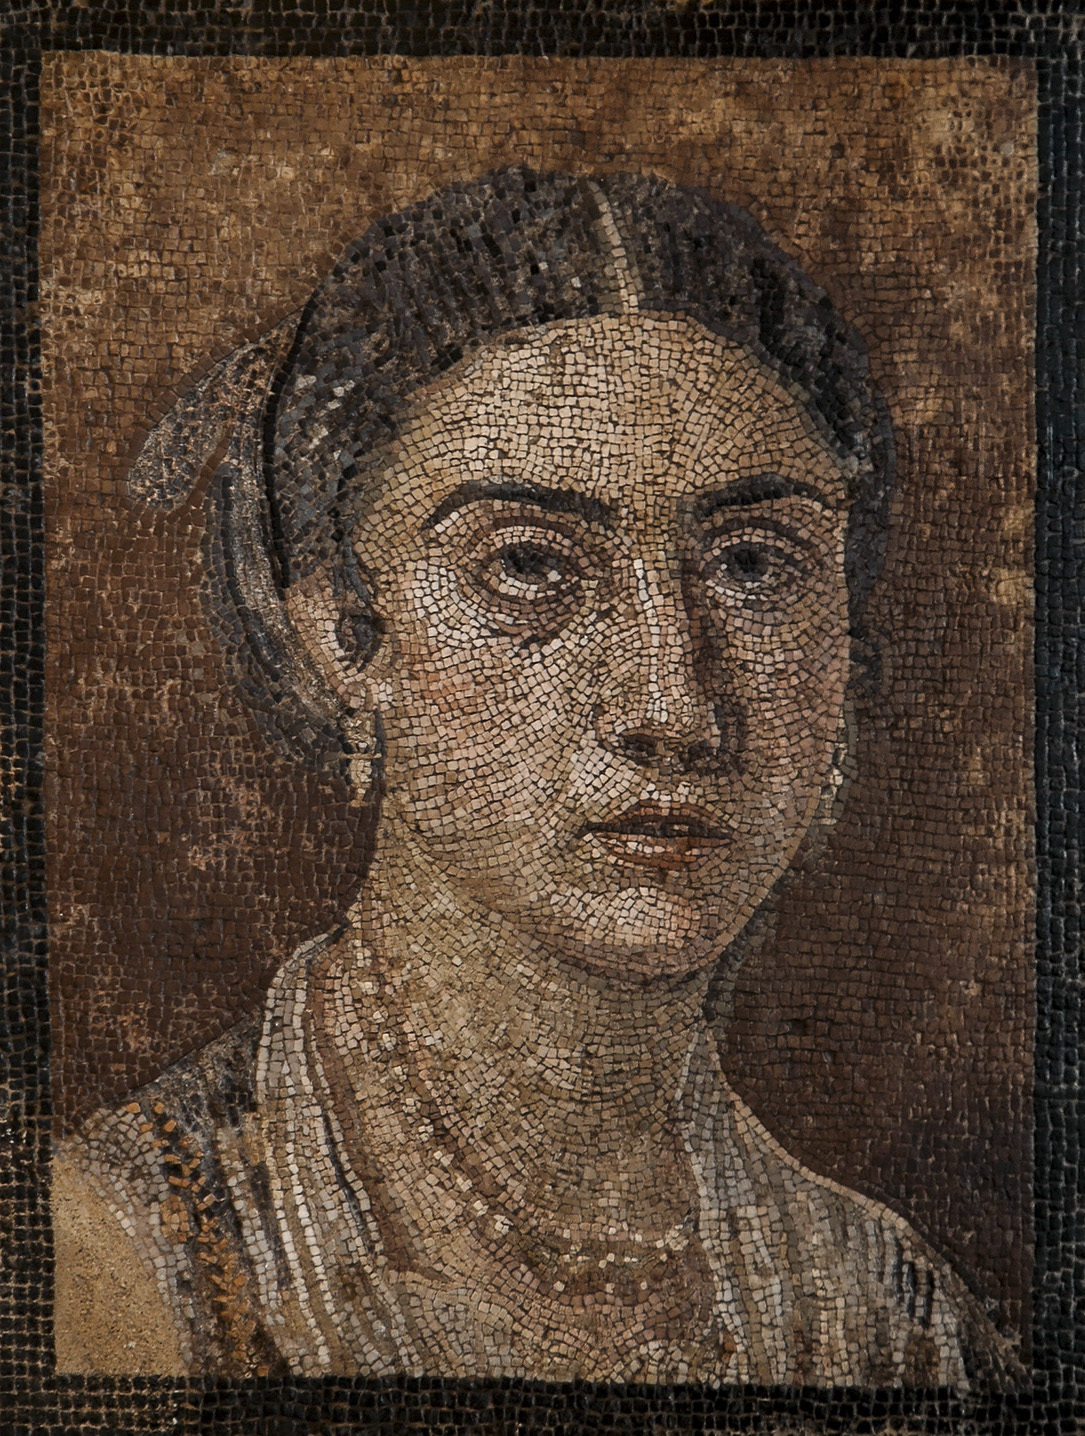 Female portrait. Mosaic from Pompeii (VI, 15, 14). Late 1st cent. BCE. Inv. No. 124666. Naples, National Archaeological Museum